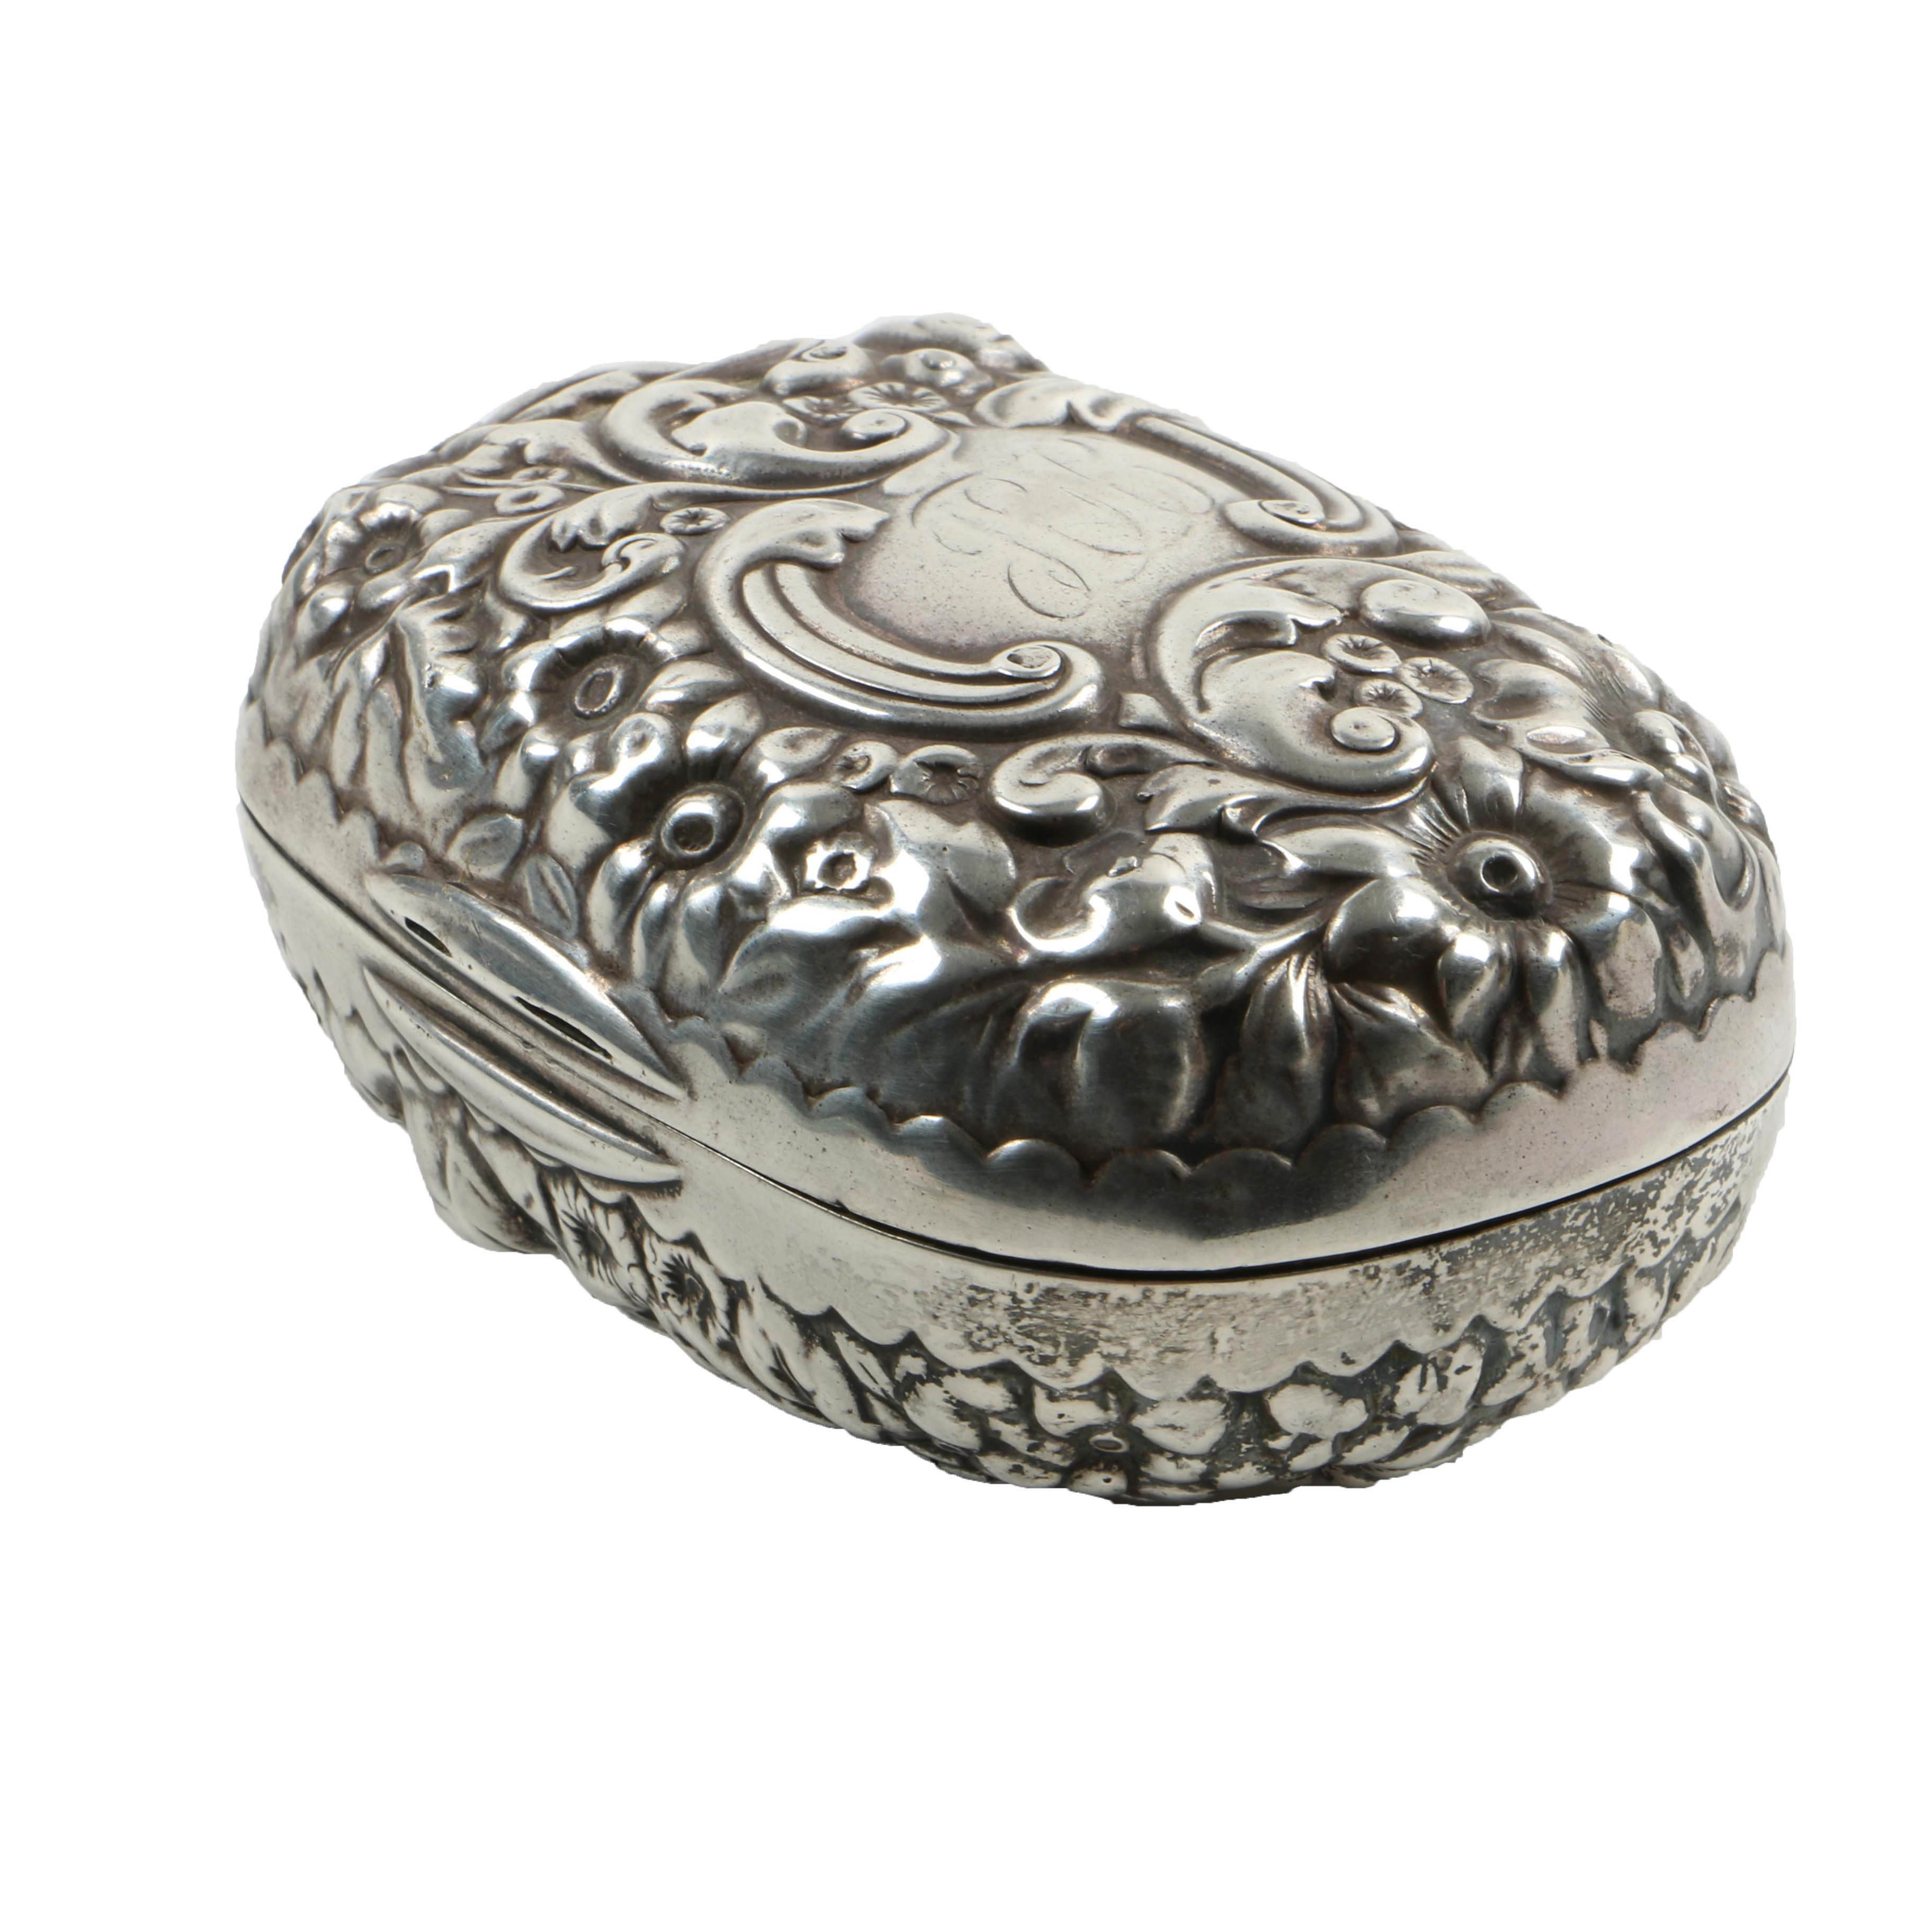 Gorham Sterling Silver Soap Dish in Floral Repousse Pattern